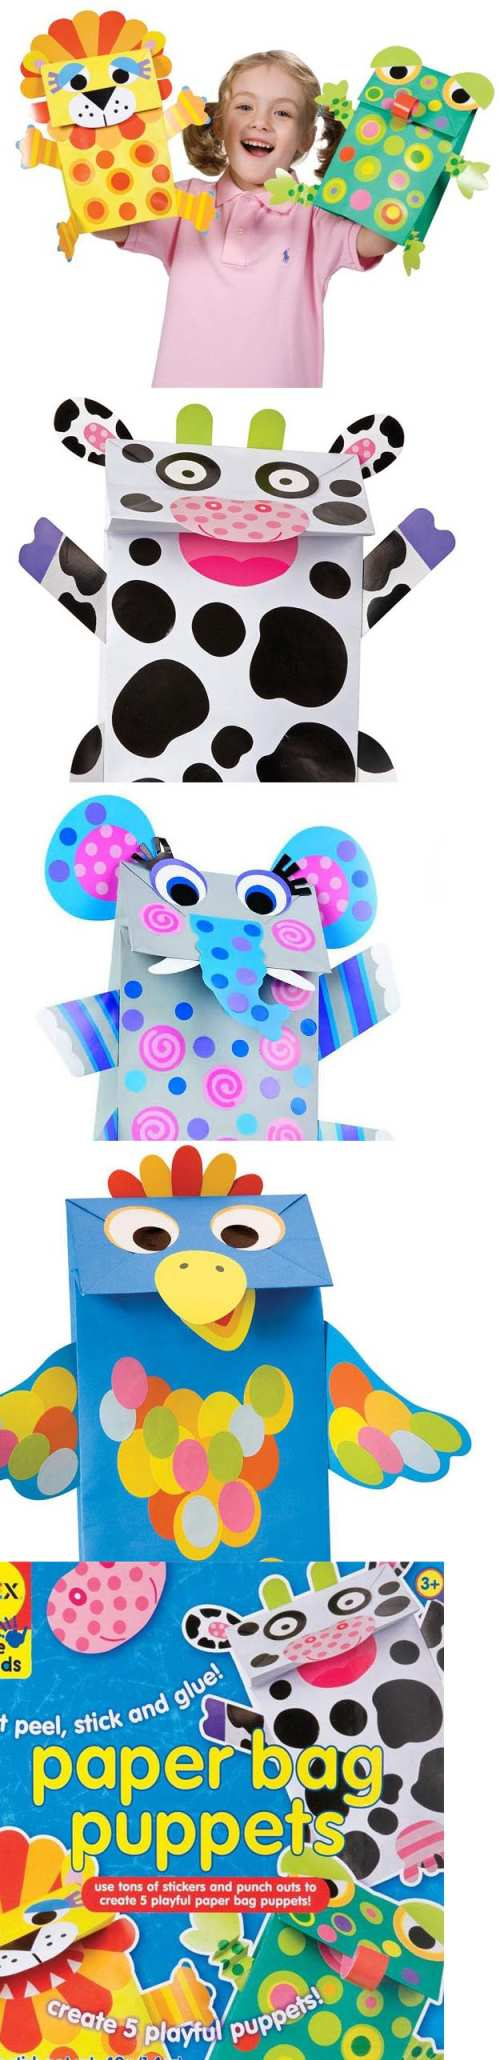 4 year old arts and crafts - Art For Children A Creative Set For Kids Paper Zoo Alex